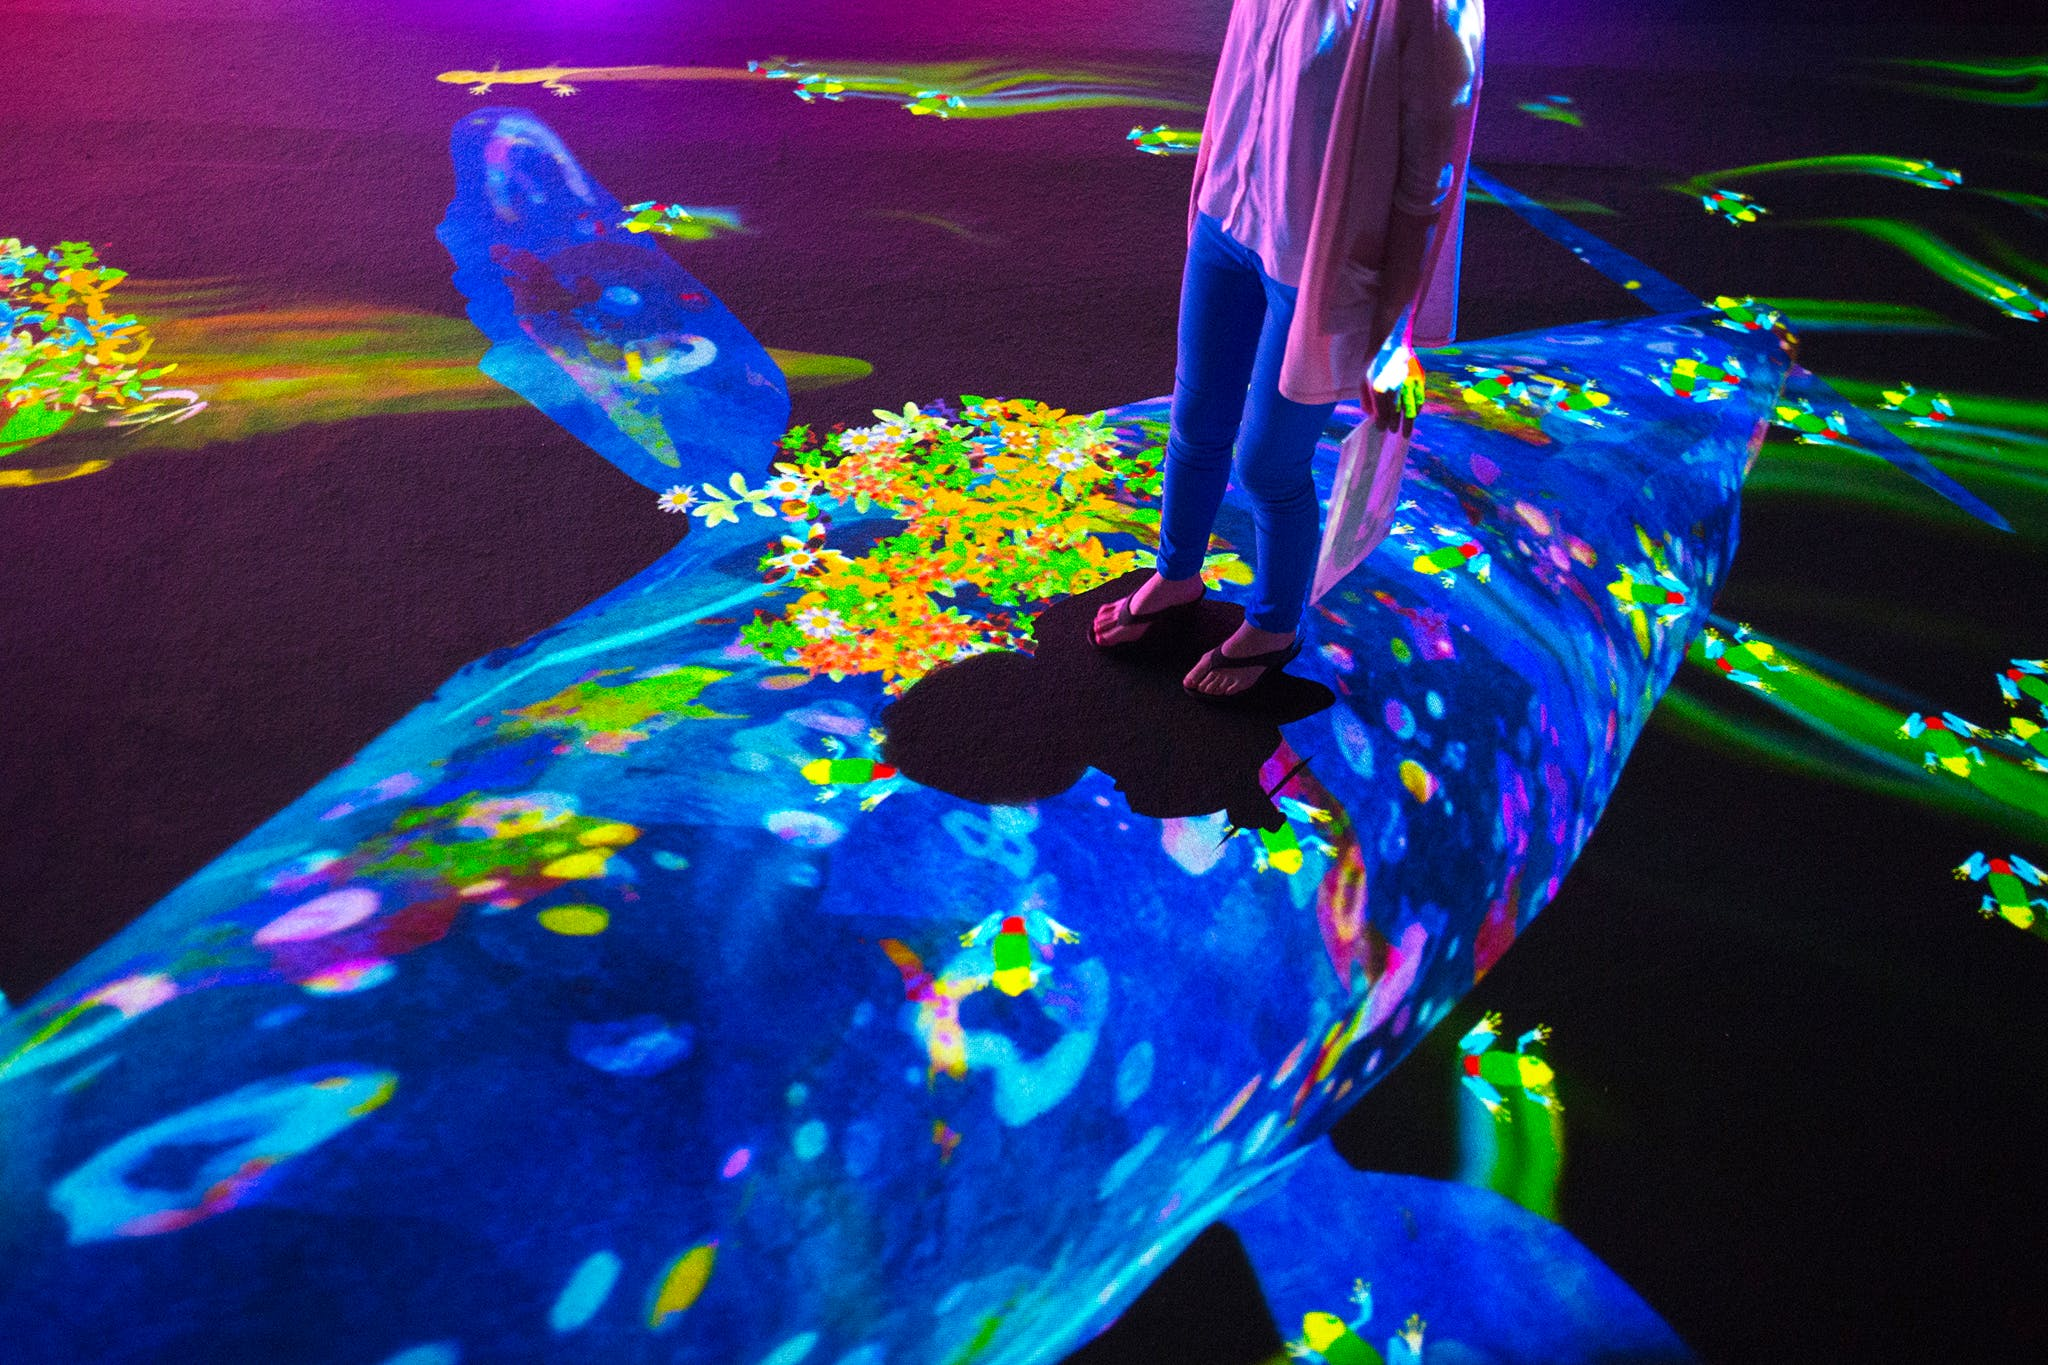 teamLab, View of Graffiti Nature, 2016, (Photo: ©teamLab, courtesy Pace Gallery)